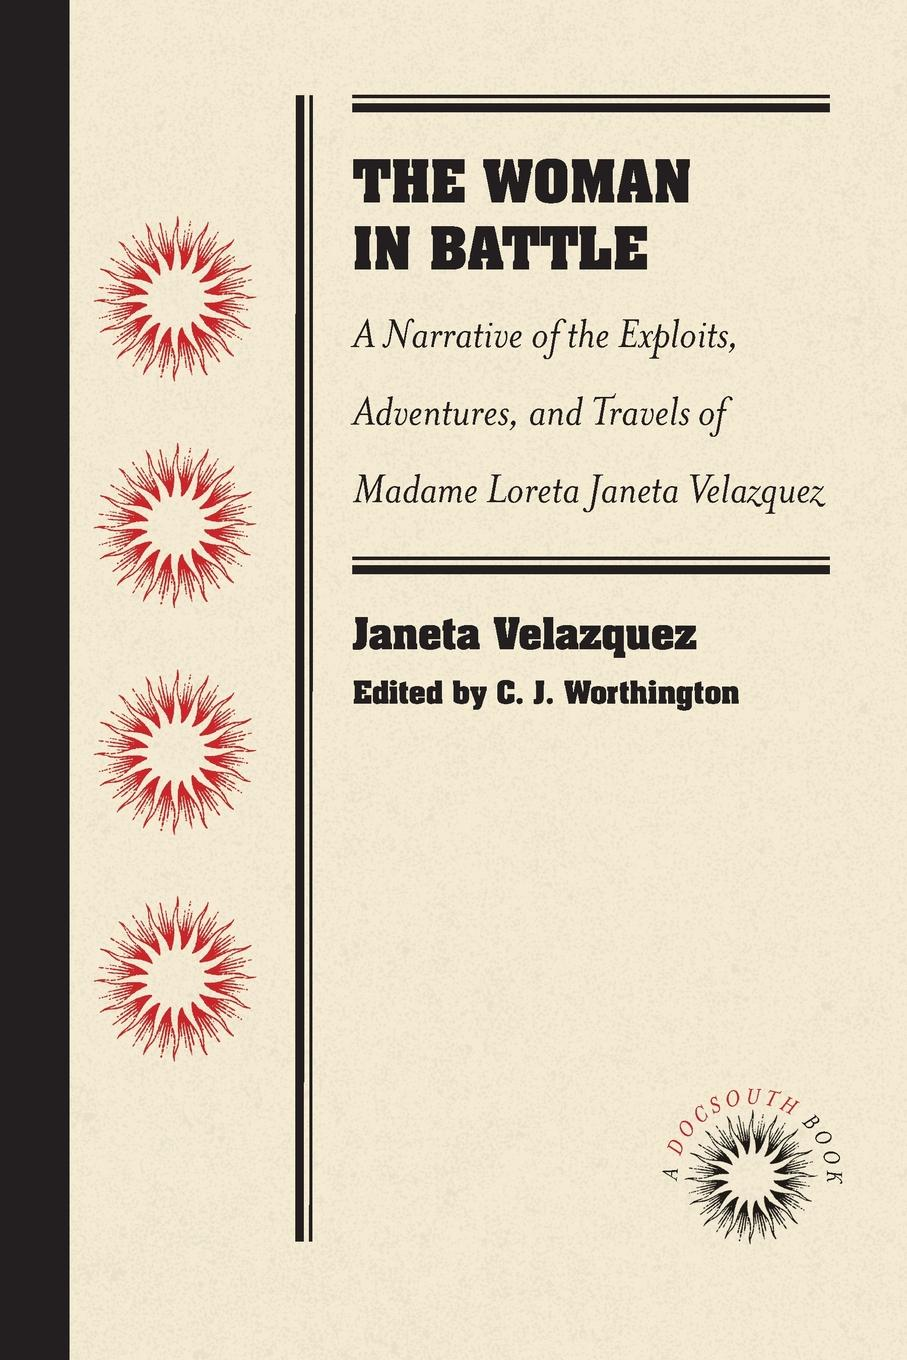 Janeta Velazquez The Woman in Battle. A Narrative of the Exploits, Adventures, and Travels of Madame Loreta Janeta Velazquez, Otherwise Known as Lieutenant Harry T. Buford, Confederate States Army velazquez complete works